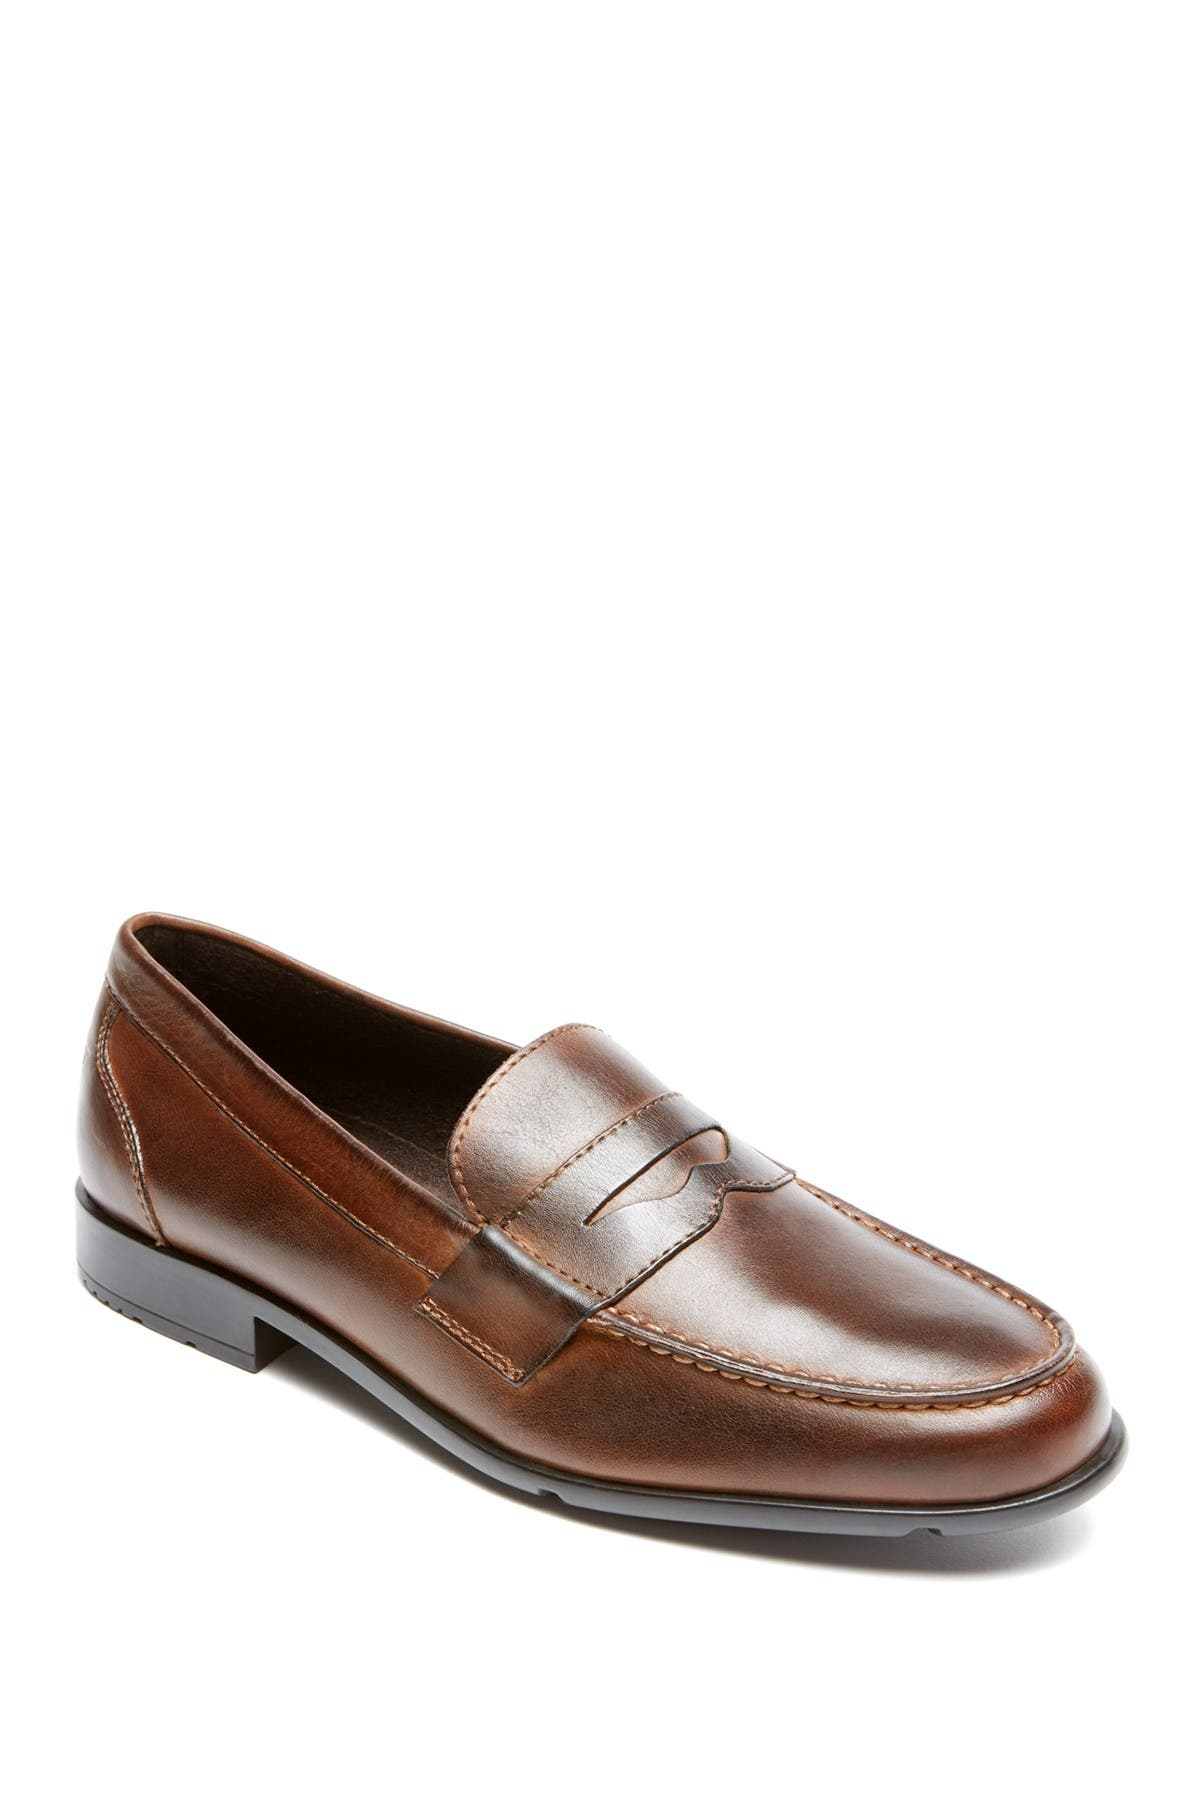 Image of Rockport Classic Penny Loafer - Wide Width Available